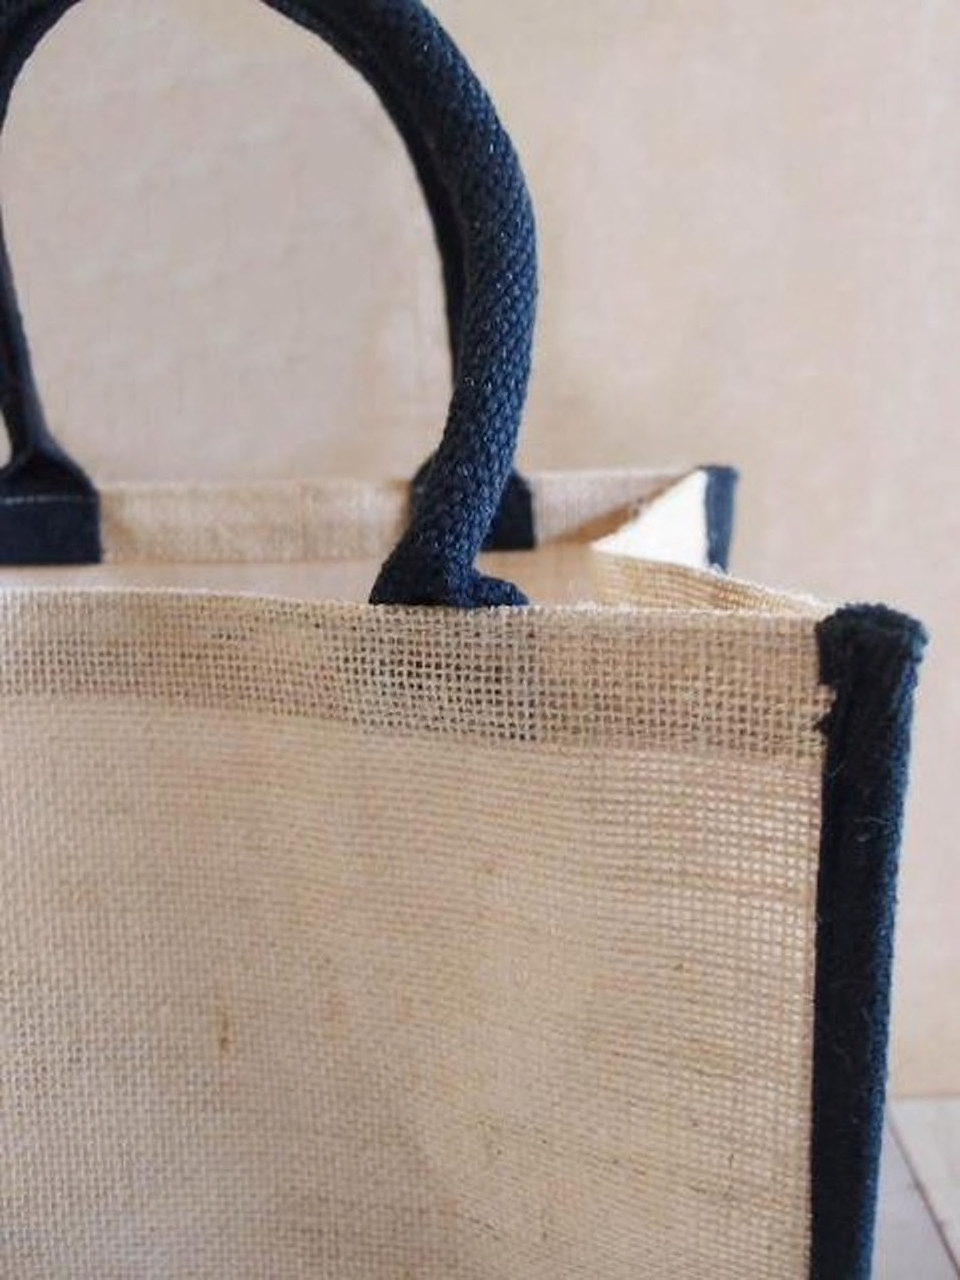 Wholesale Burlap Tote Bags, Jute Tote Bag with Black Cotton Trim 12 x 12 x 7.75 inches, B875-79